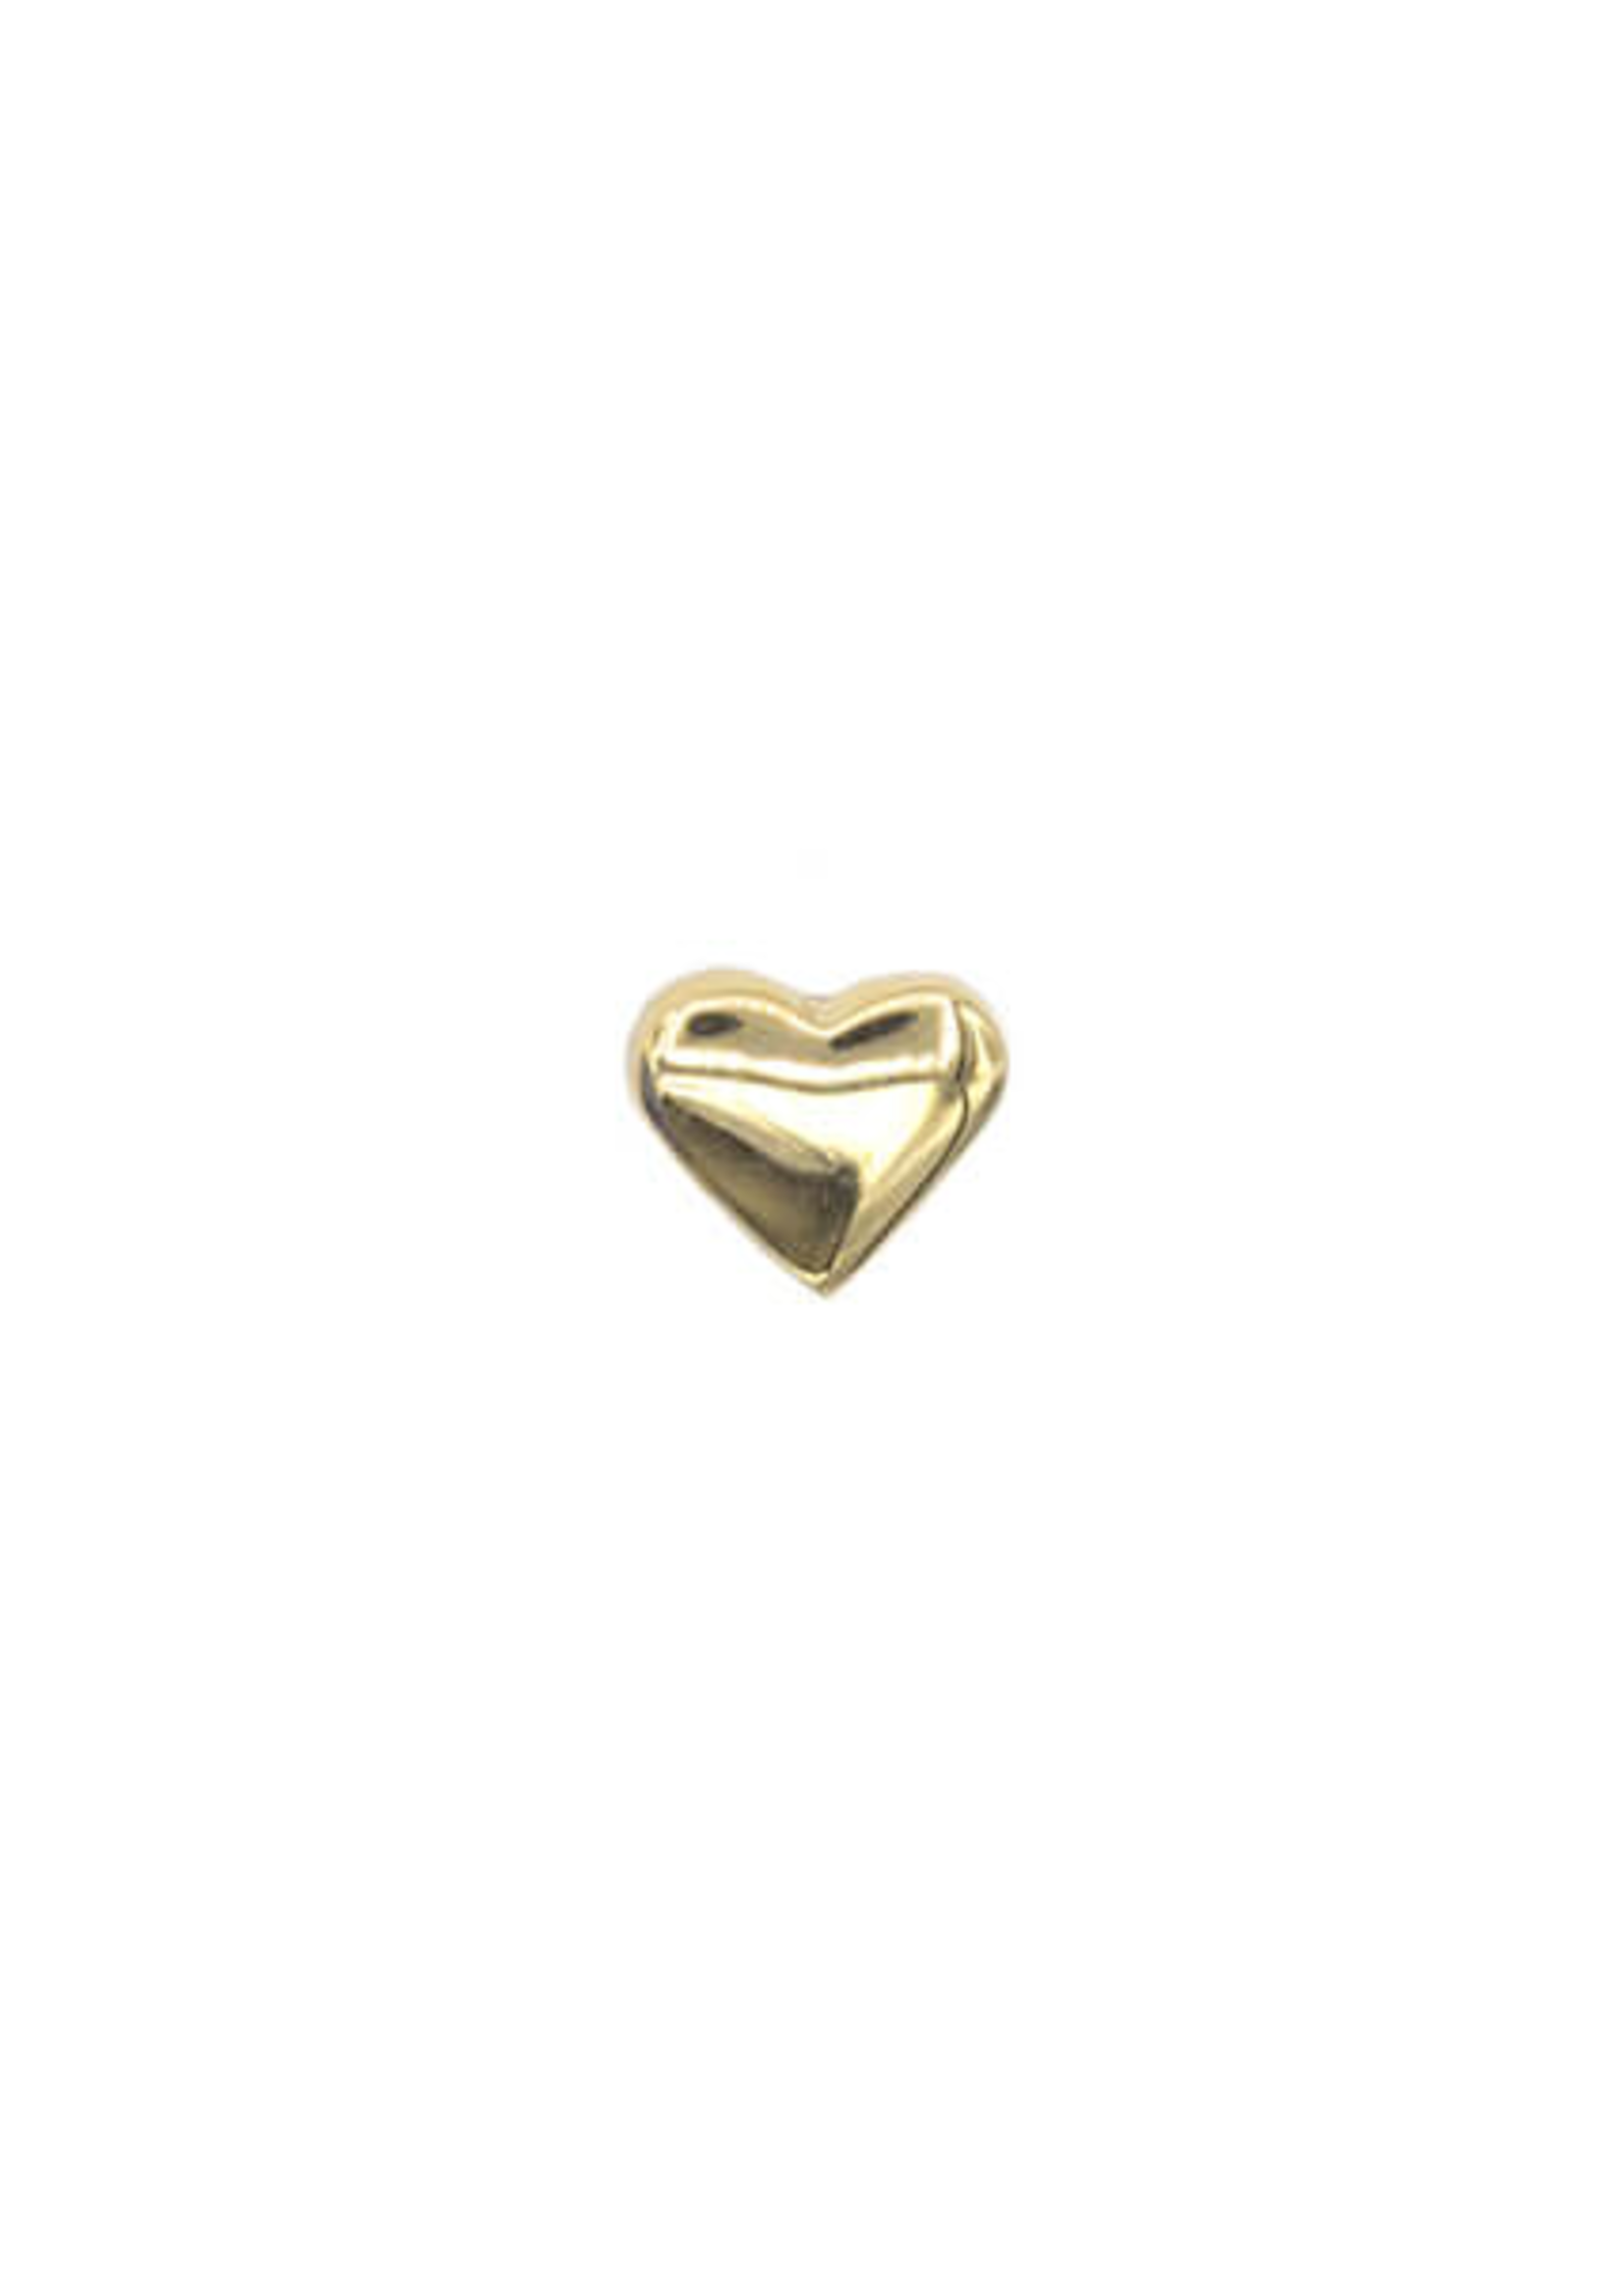 14k YG Plain Heart (1.5mm) Threadless Pin